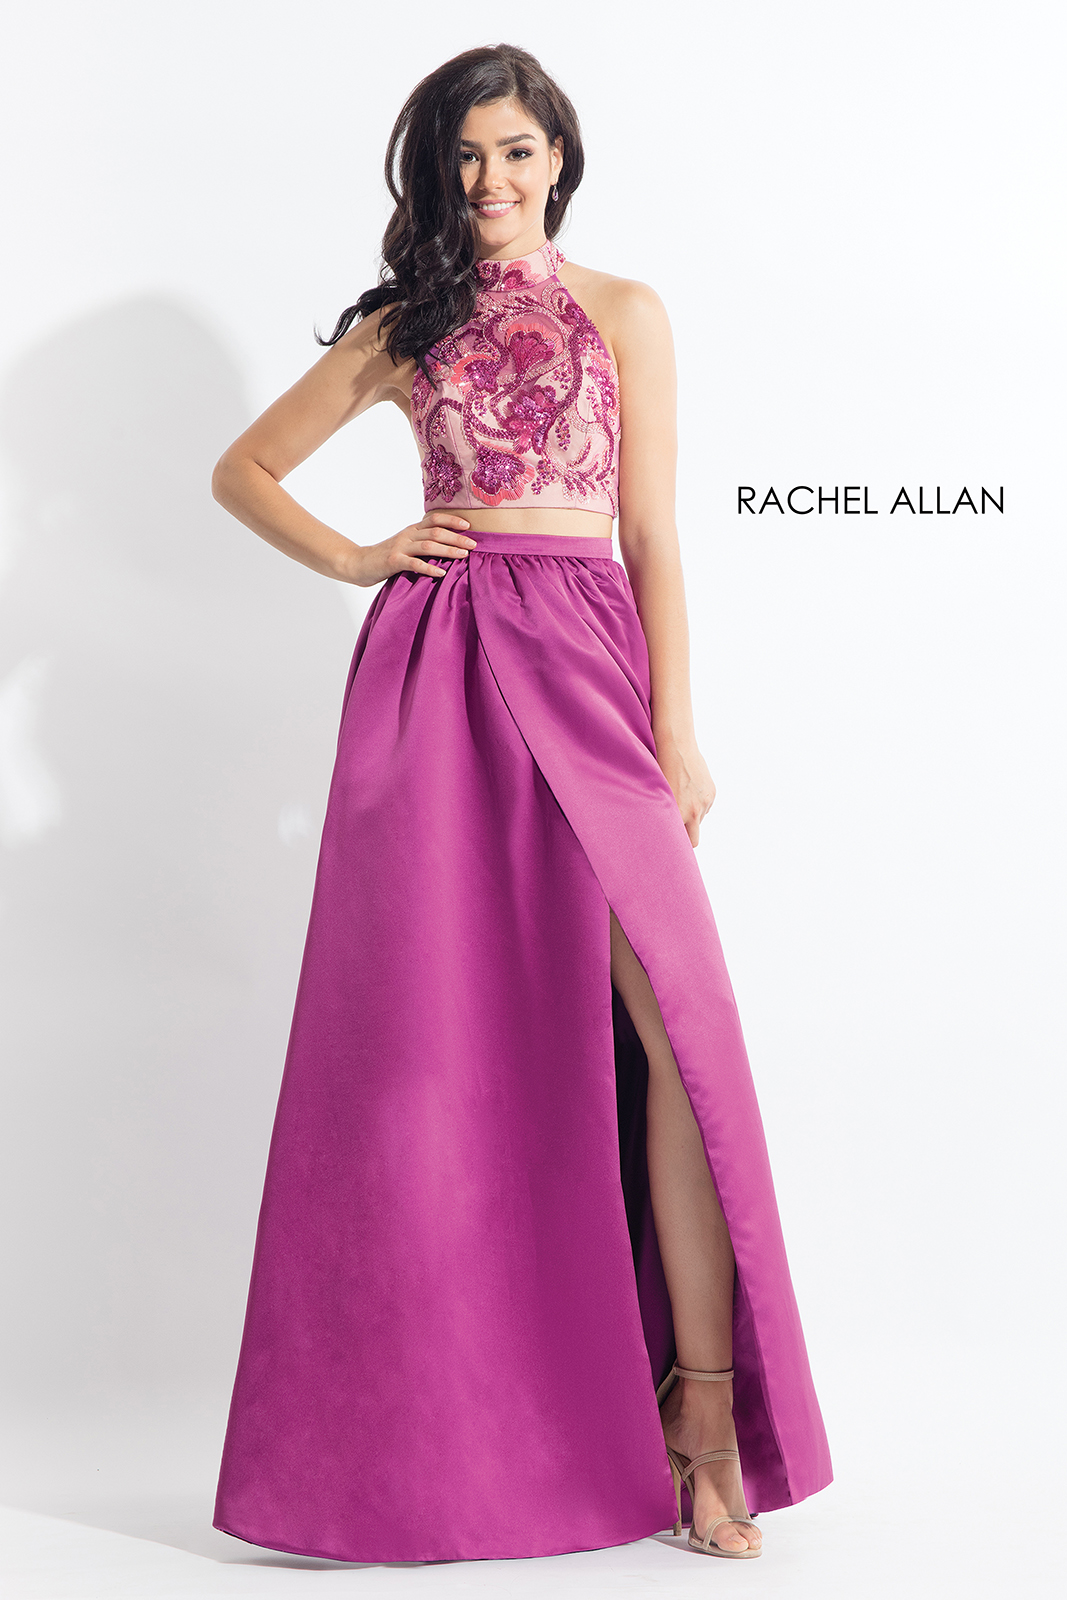 High Neckline Two-Piece Prom Dresses in Pink Color